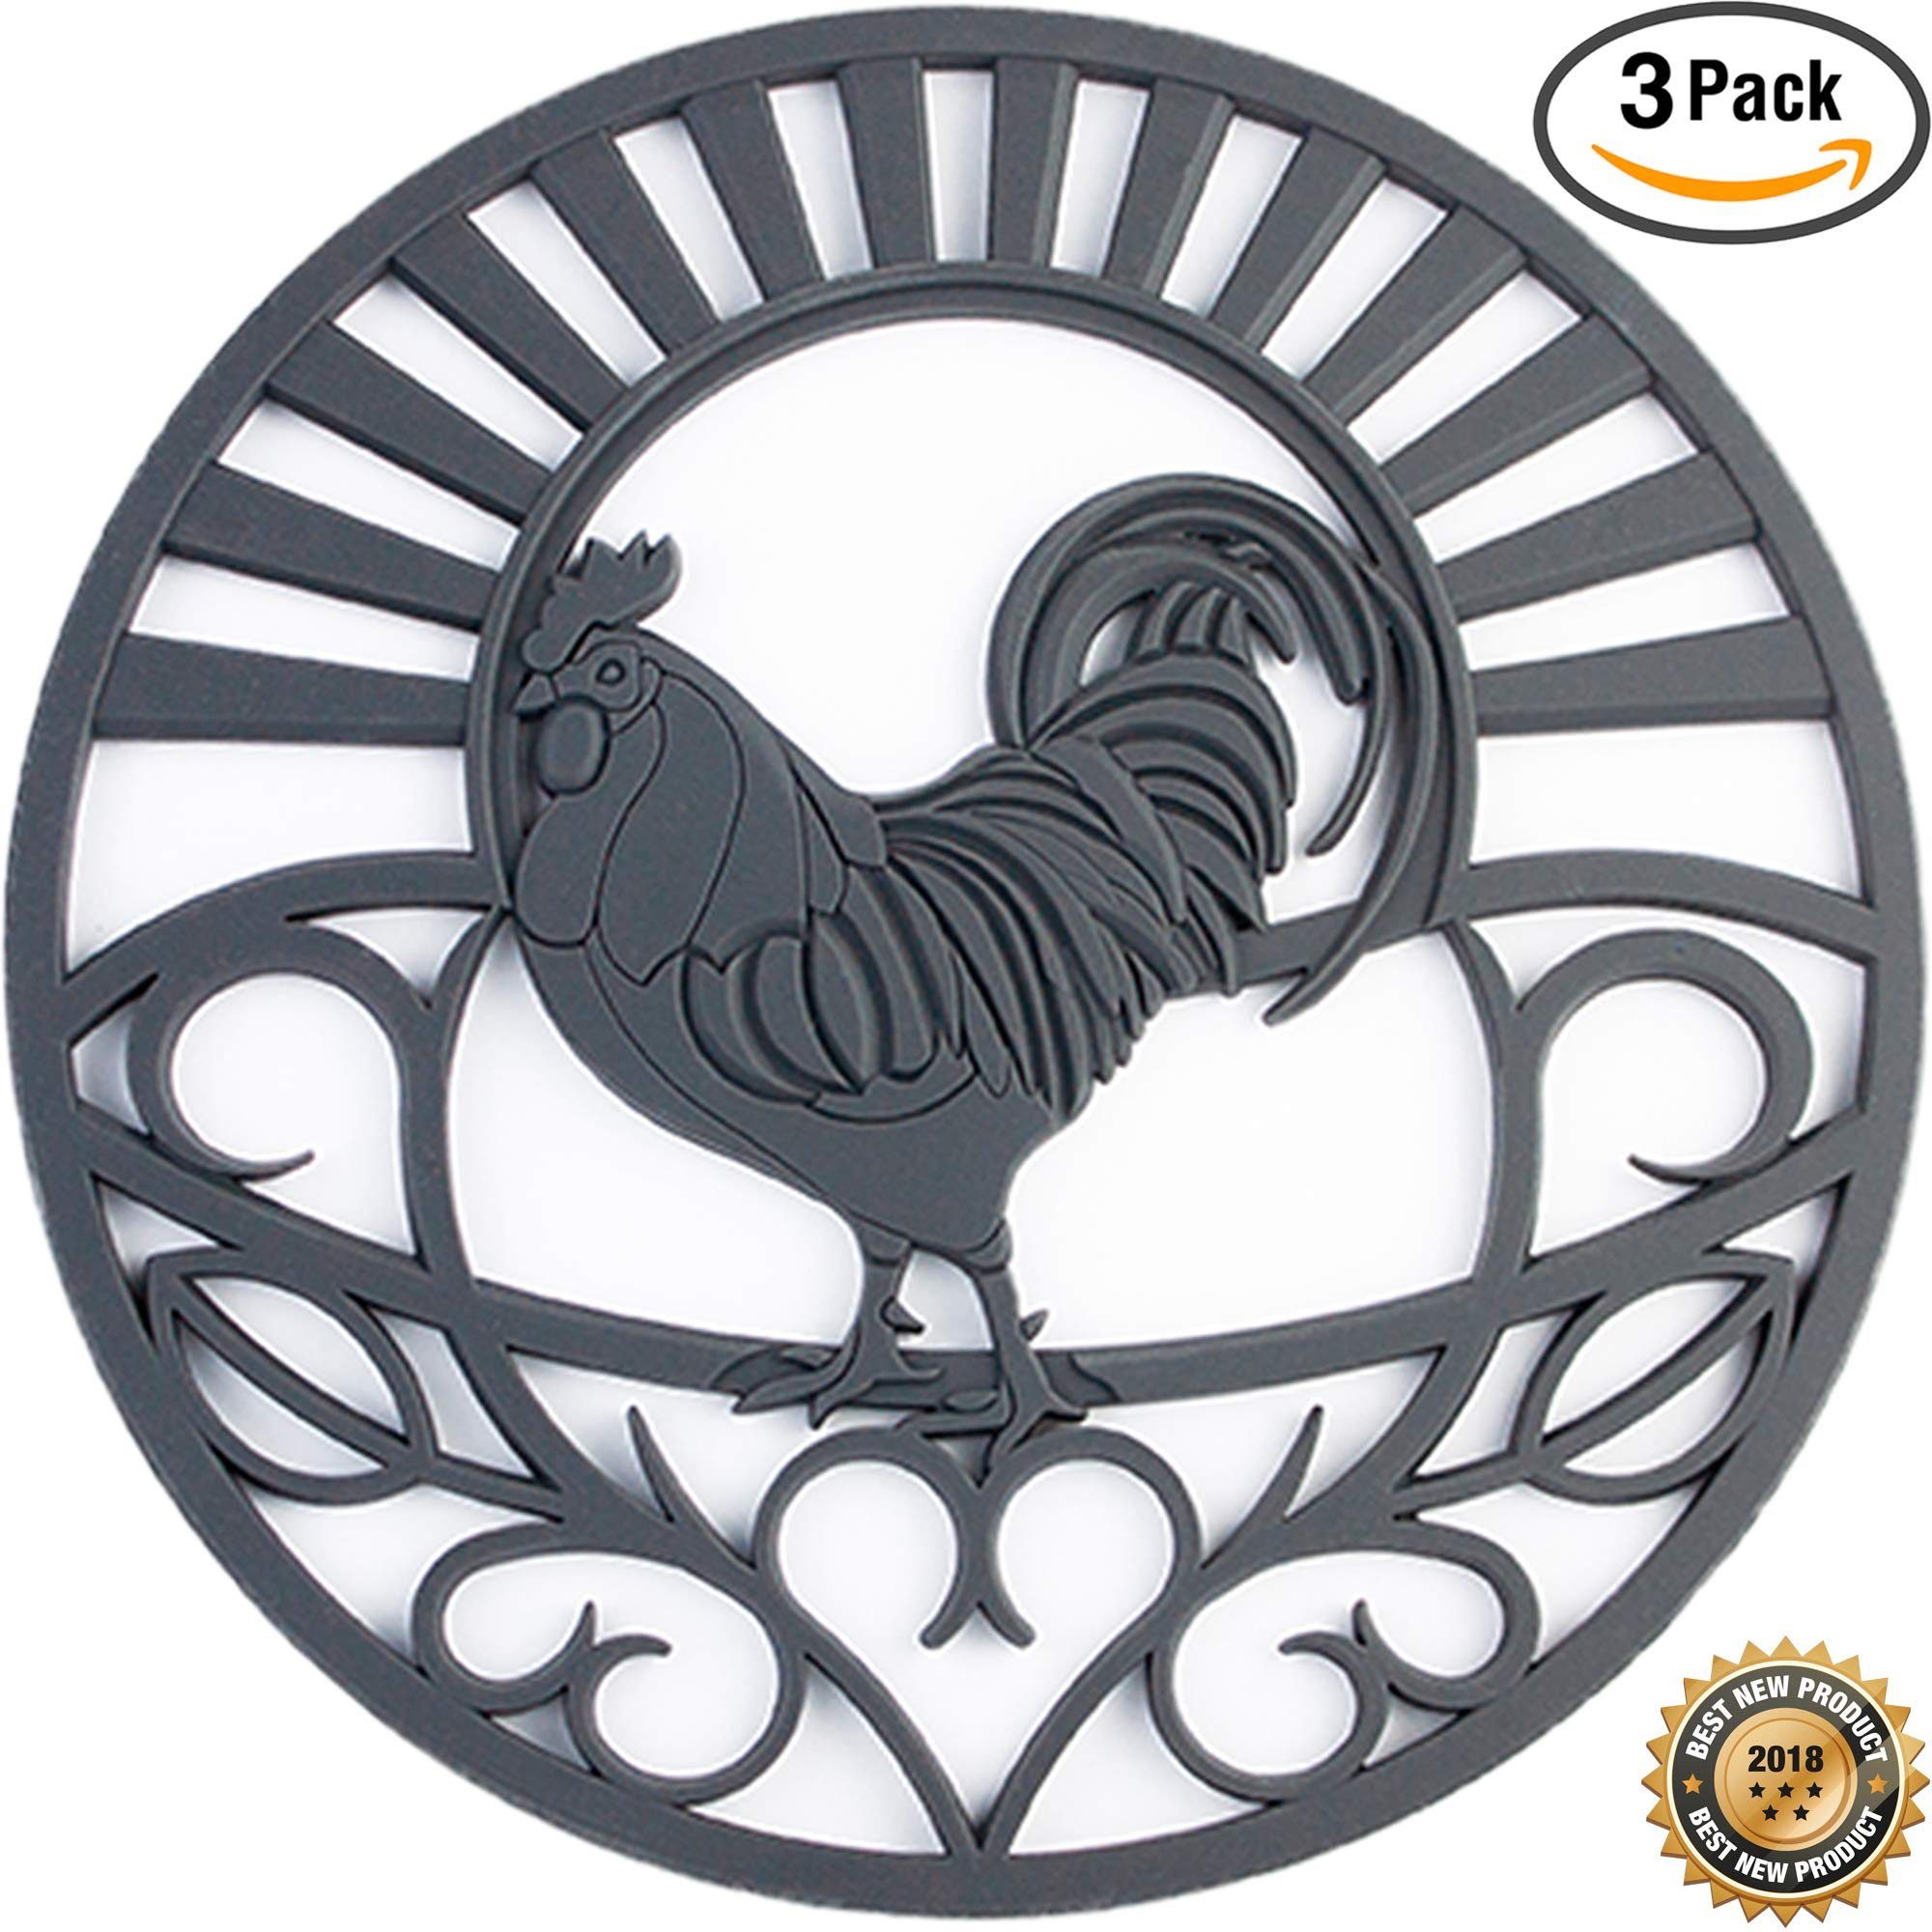 Silicone Trivet Set For Hot Dishes | Modern Kitchen Hot Pads For Pots & Pans | Country Rooster Design (Symbol of Prosperity & Good Luck) Mimics Cast Iron Trivets | 7.5'' Round, Set of 3, Dark Gray